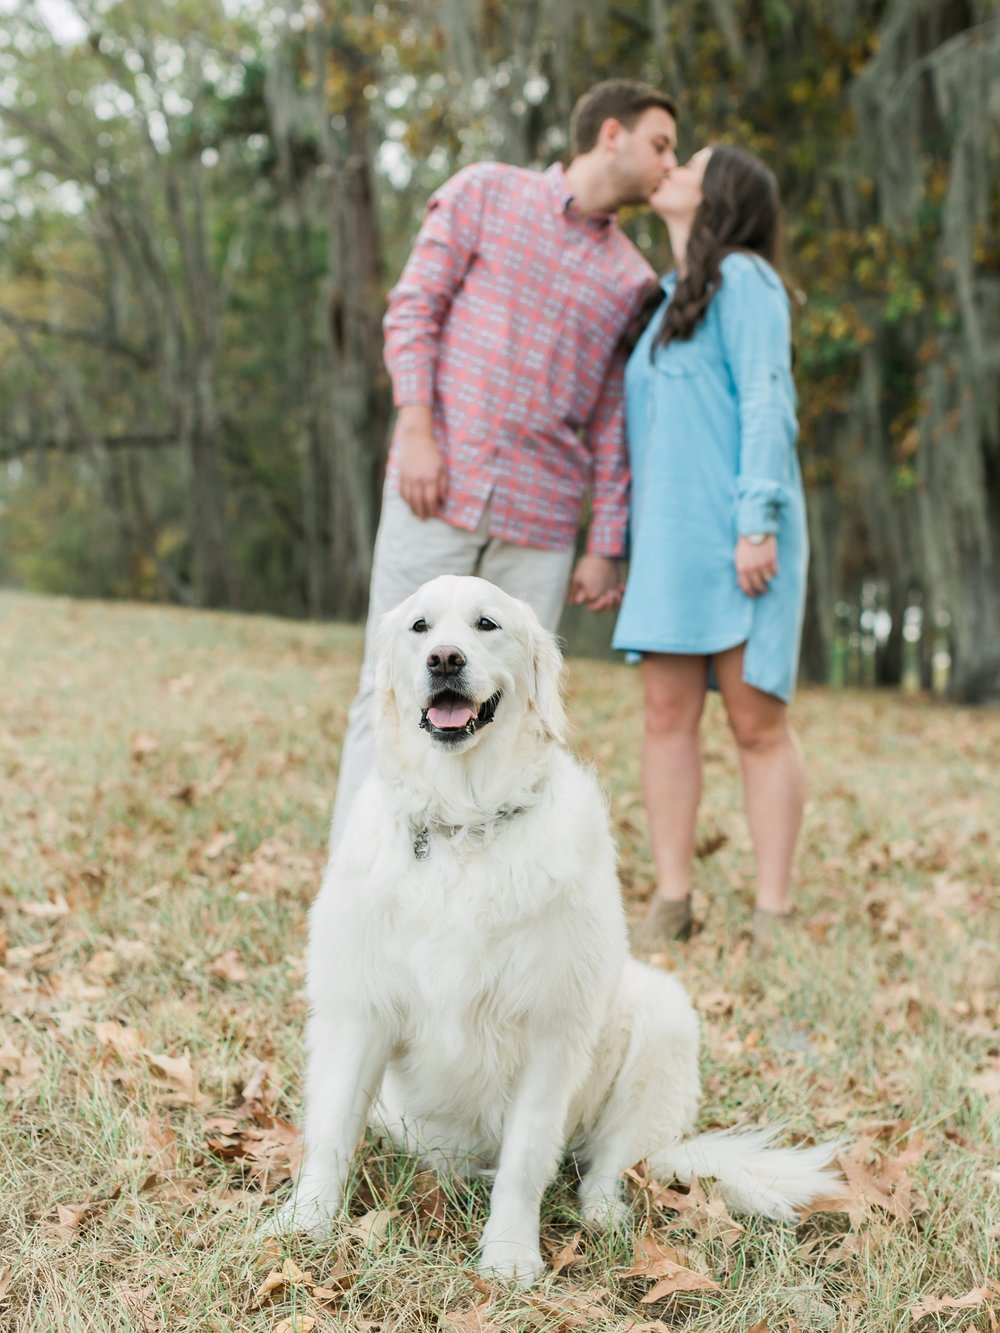 Couple take Engagement Pictures with their cute dog.